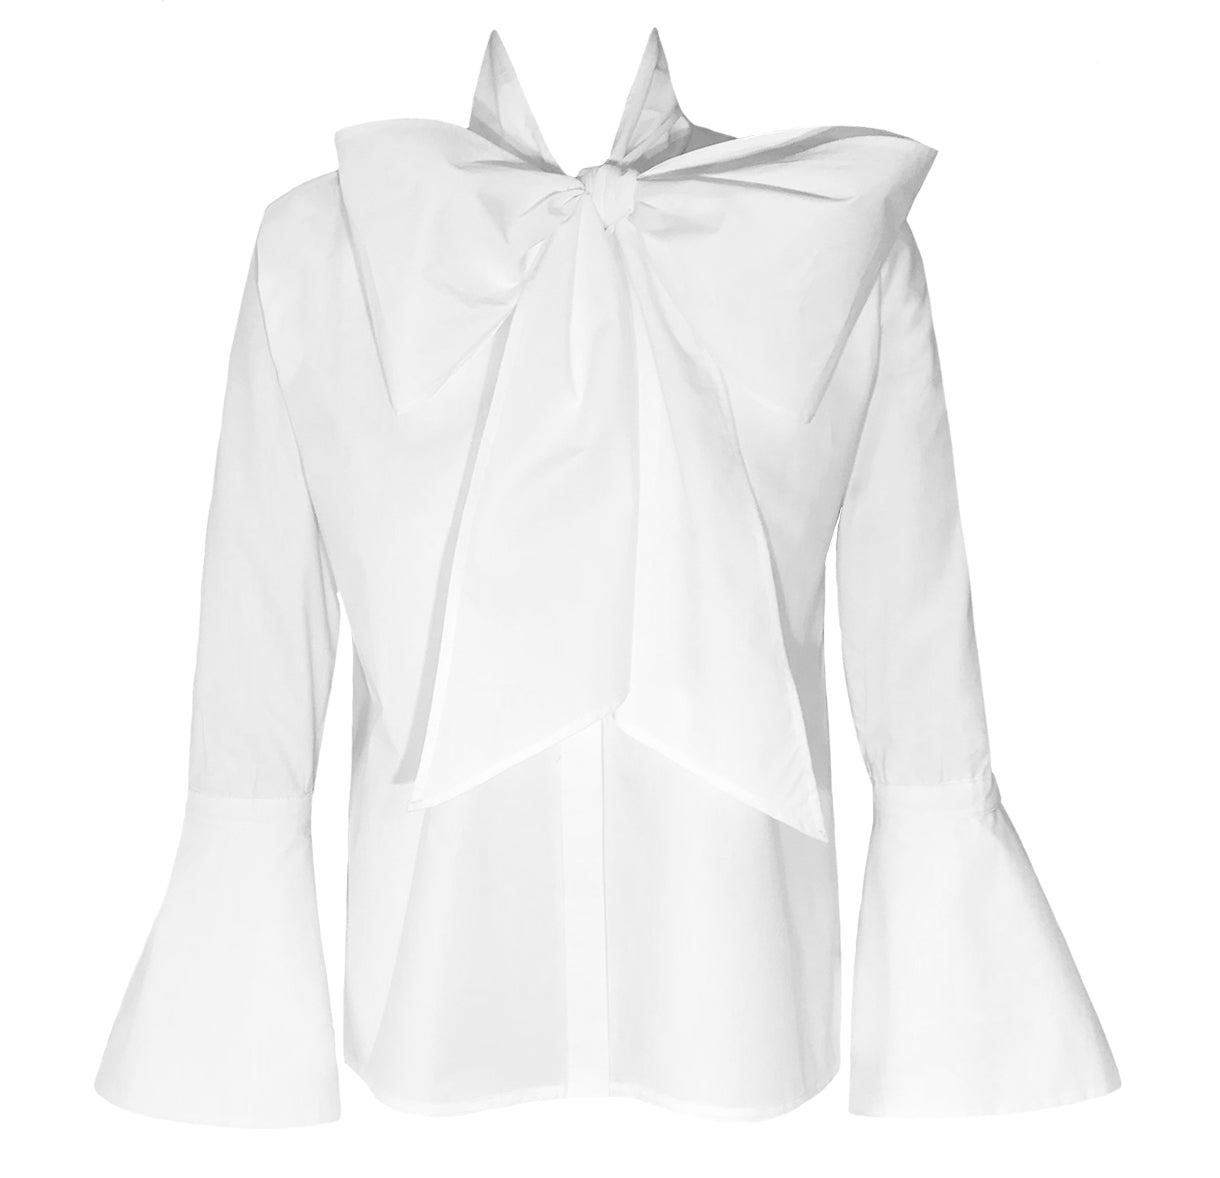 The London Dramatic Bow Shirt